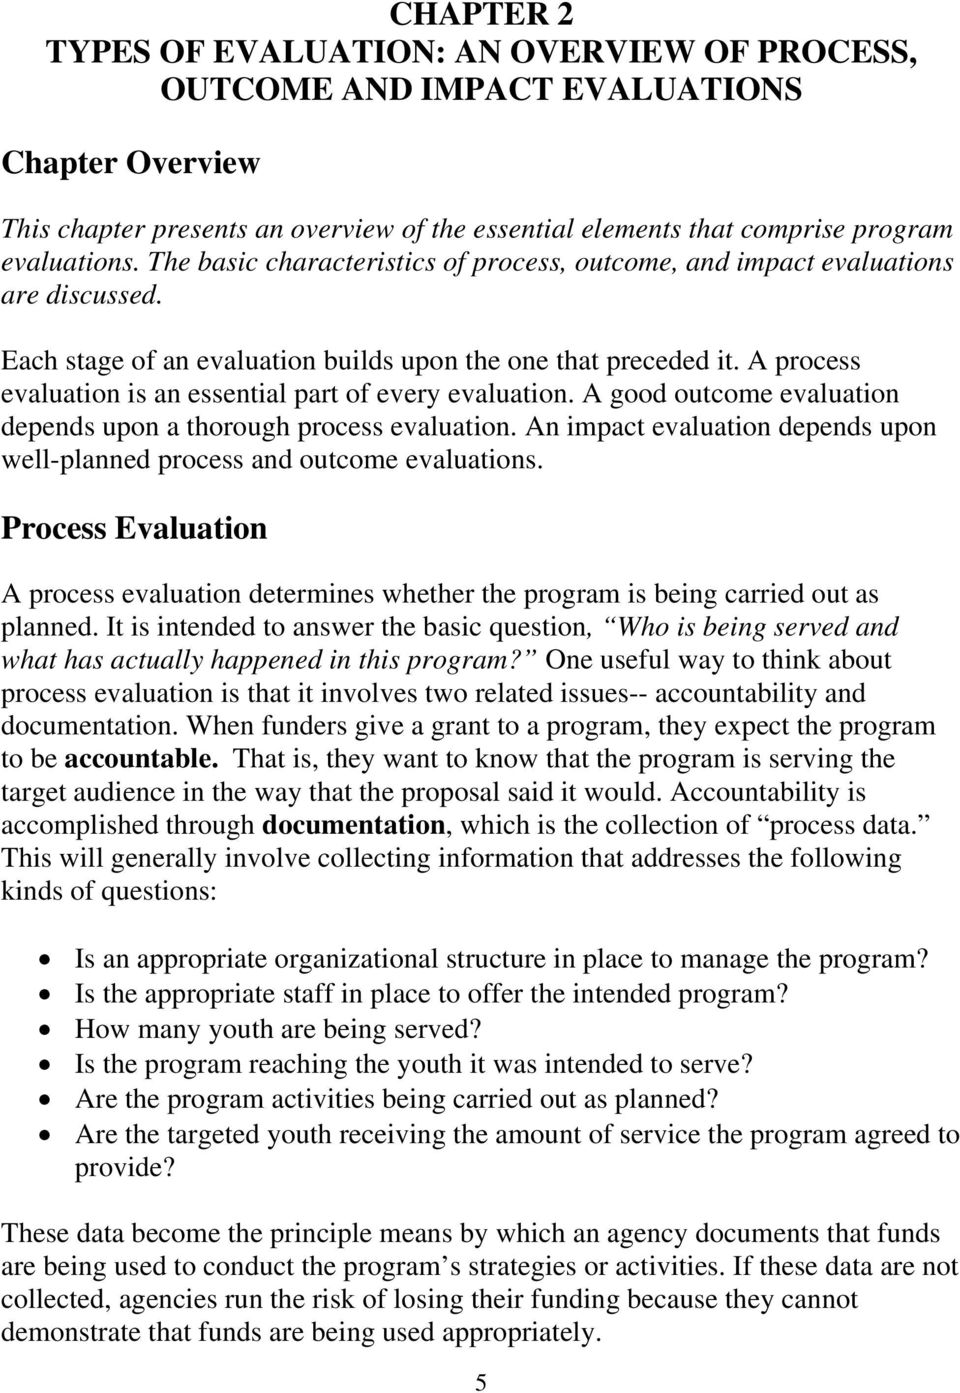 A process evaluation is an essential part of every evaluation. A good outcome evaluation depends upon a thorough process evaluation.